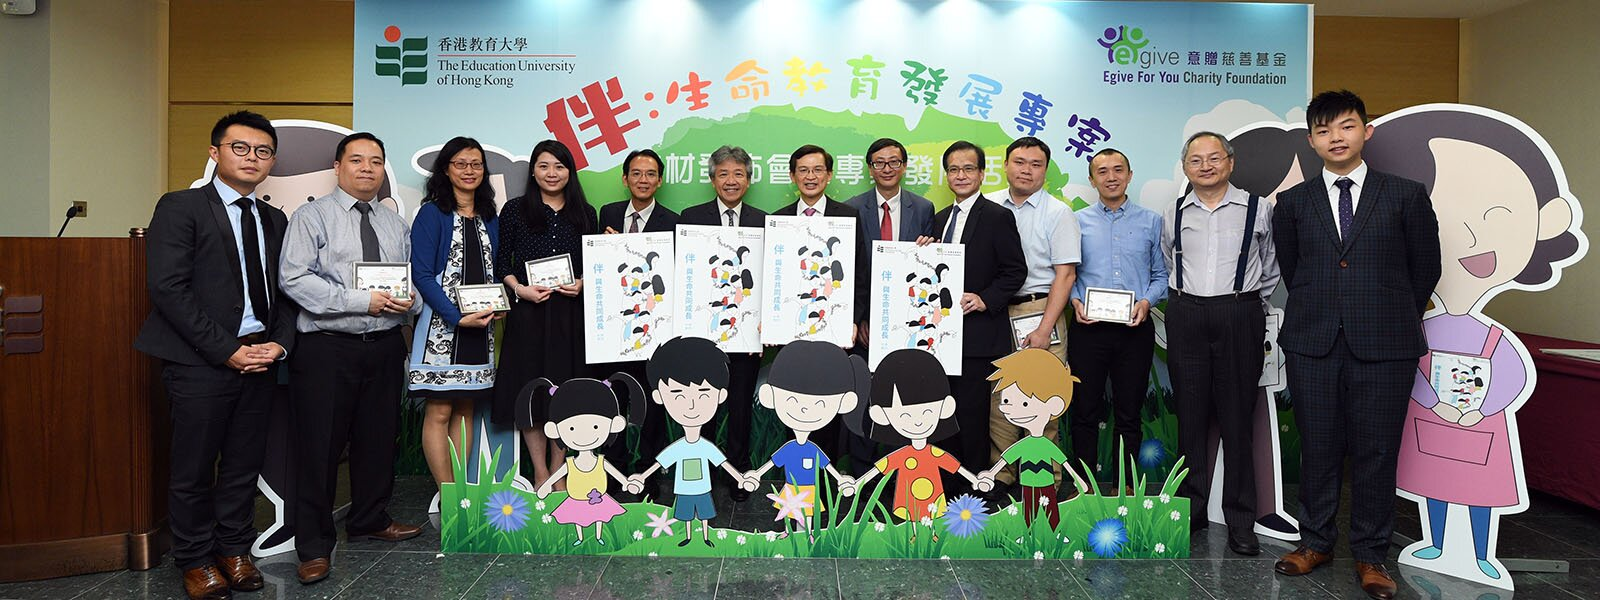 EdUHK Crowdfunds Teaching Kit in Promotion of Students' Life Values]